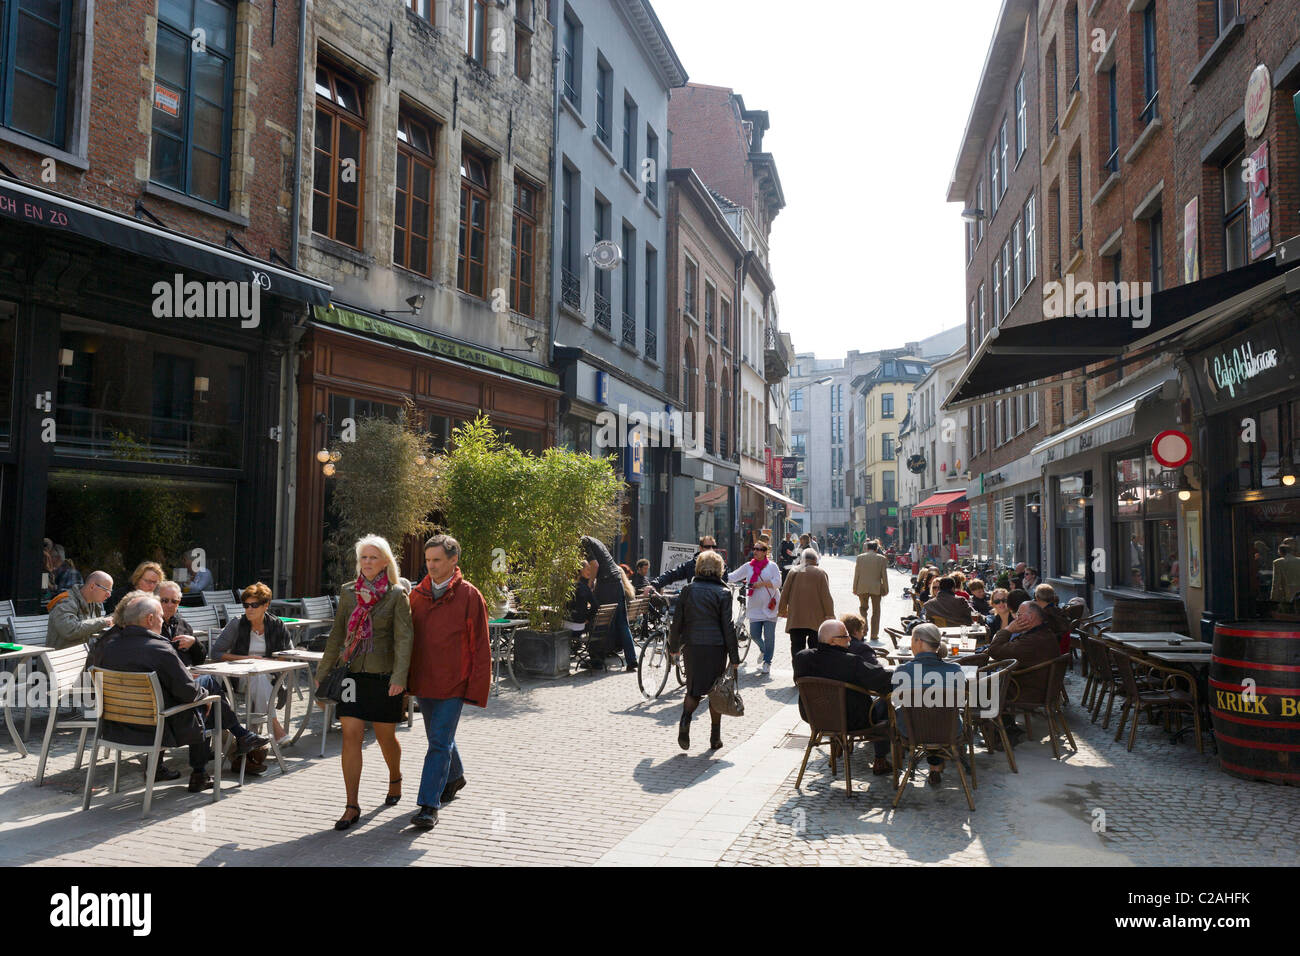 Antwerp City Center High Resolution Stock Photography And Images Alamy